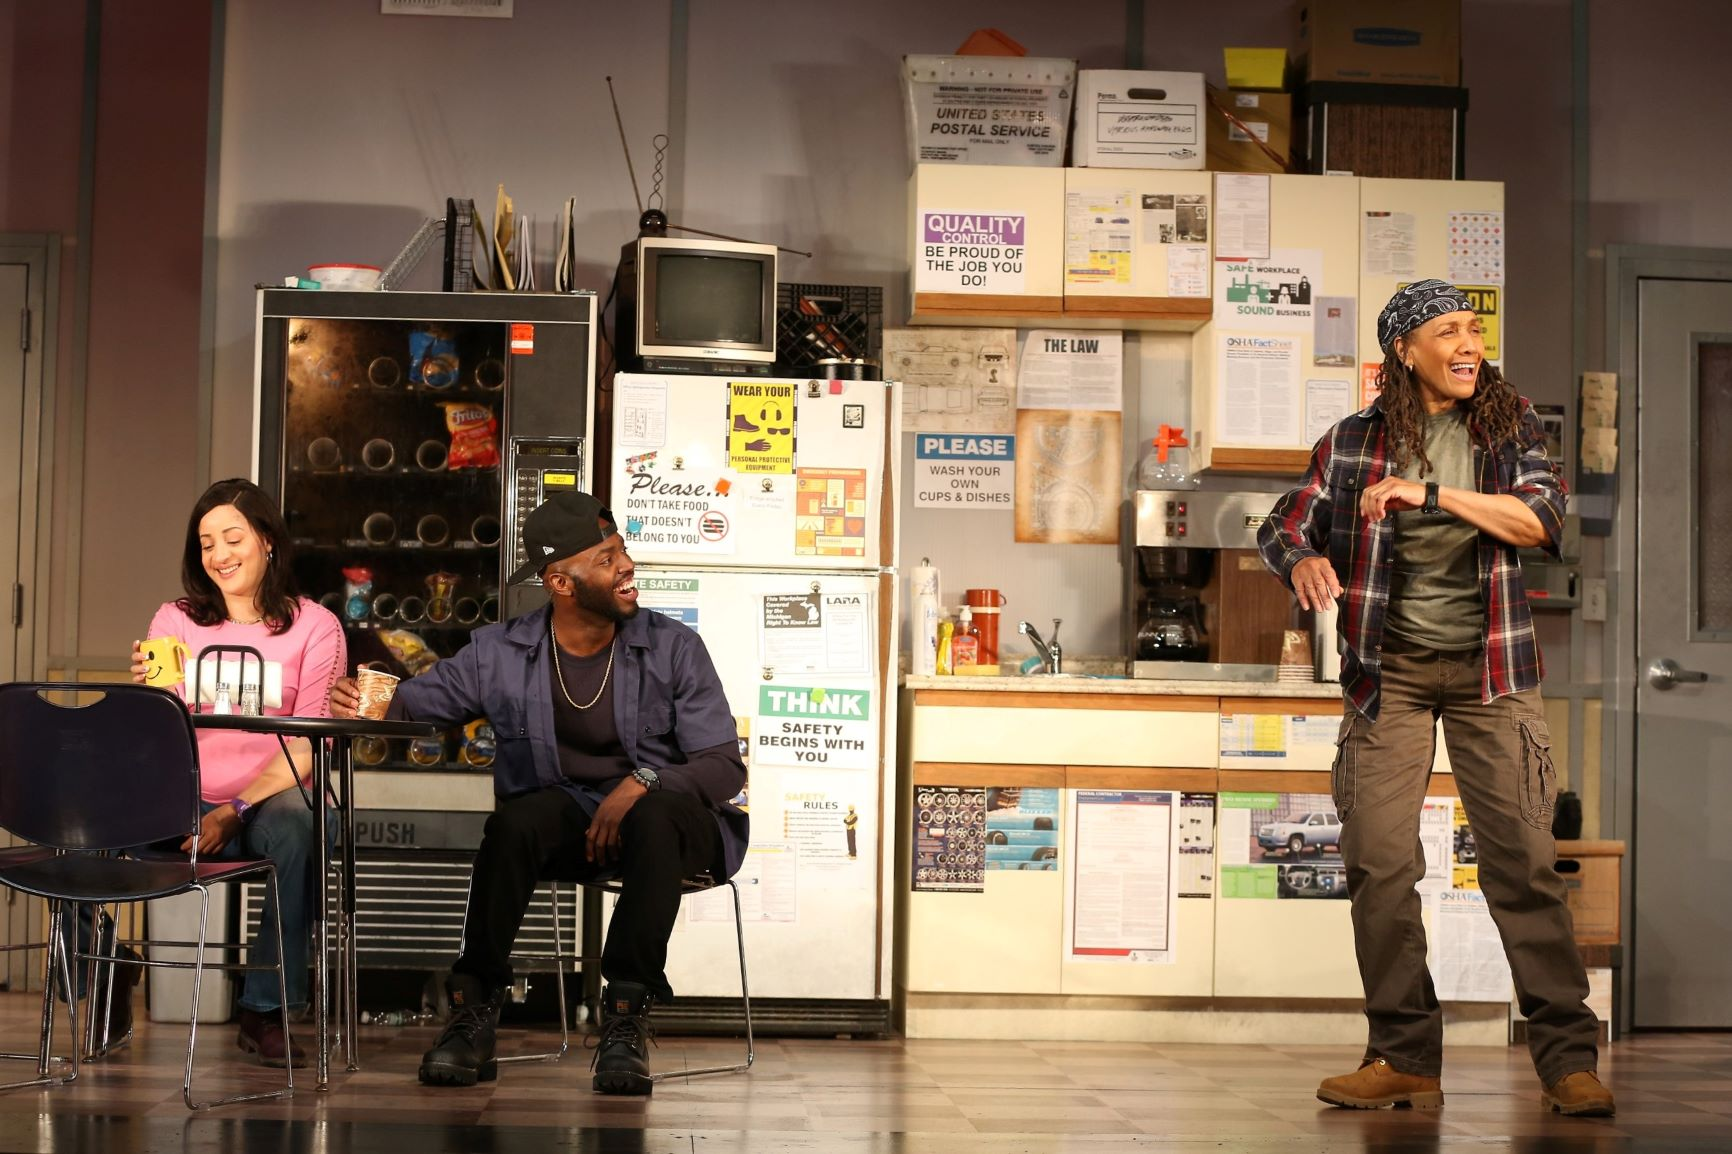 Shanita (Toni Martin), Dez (Leland Fowler), Faye (Perri Gaffney) in Westport Country Playhouse's production of Skeleton Crew (photo by Carol Rosegg)